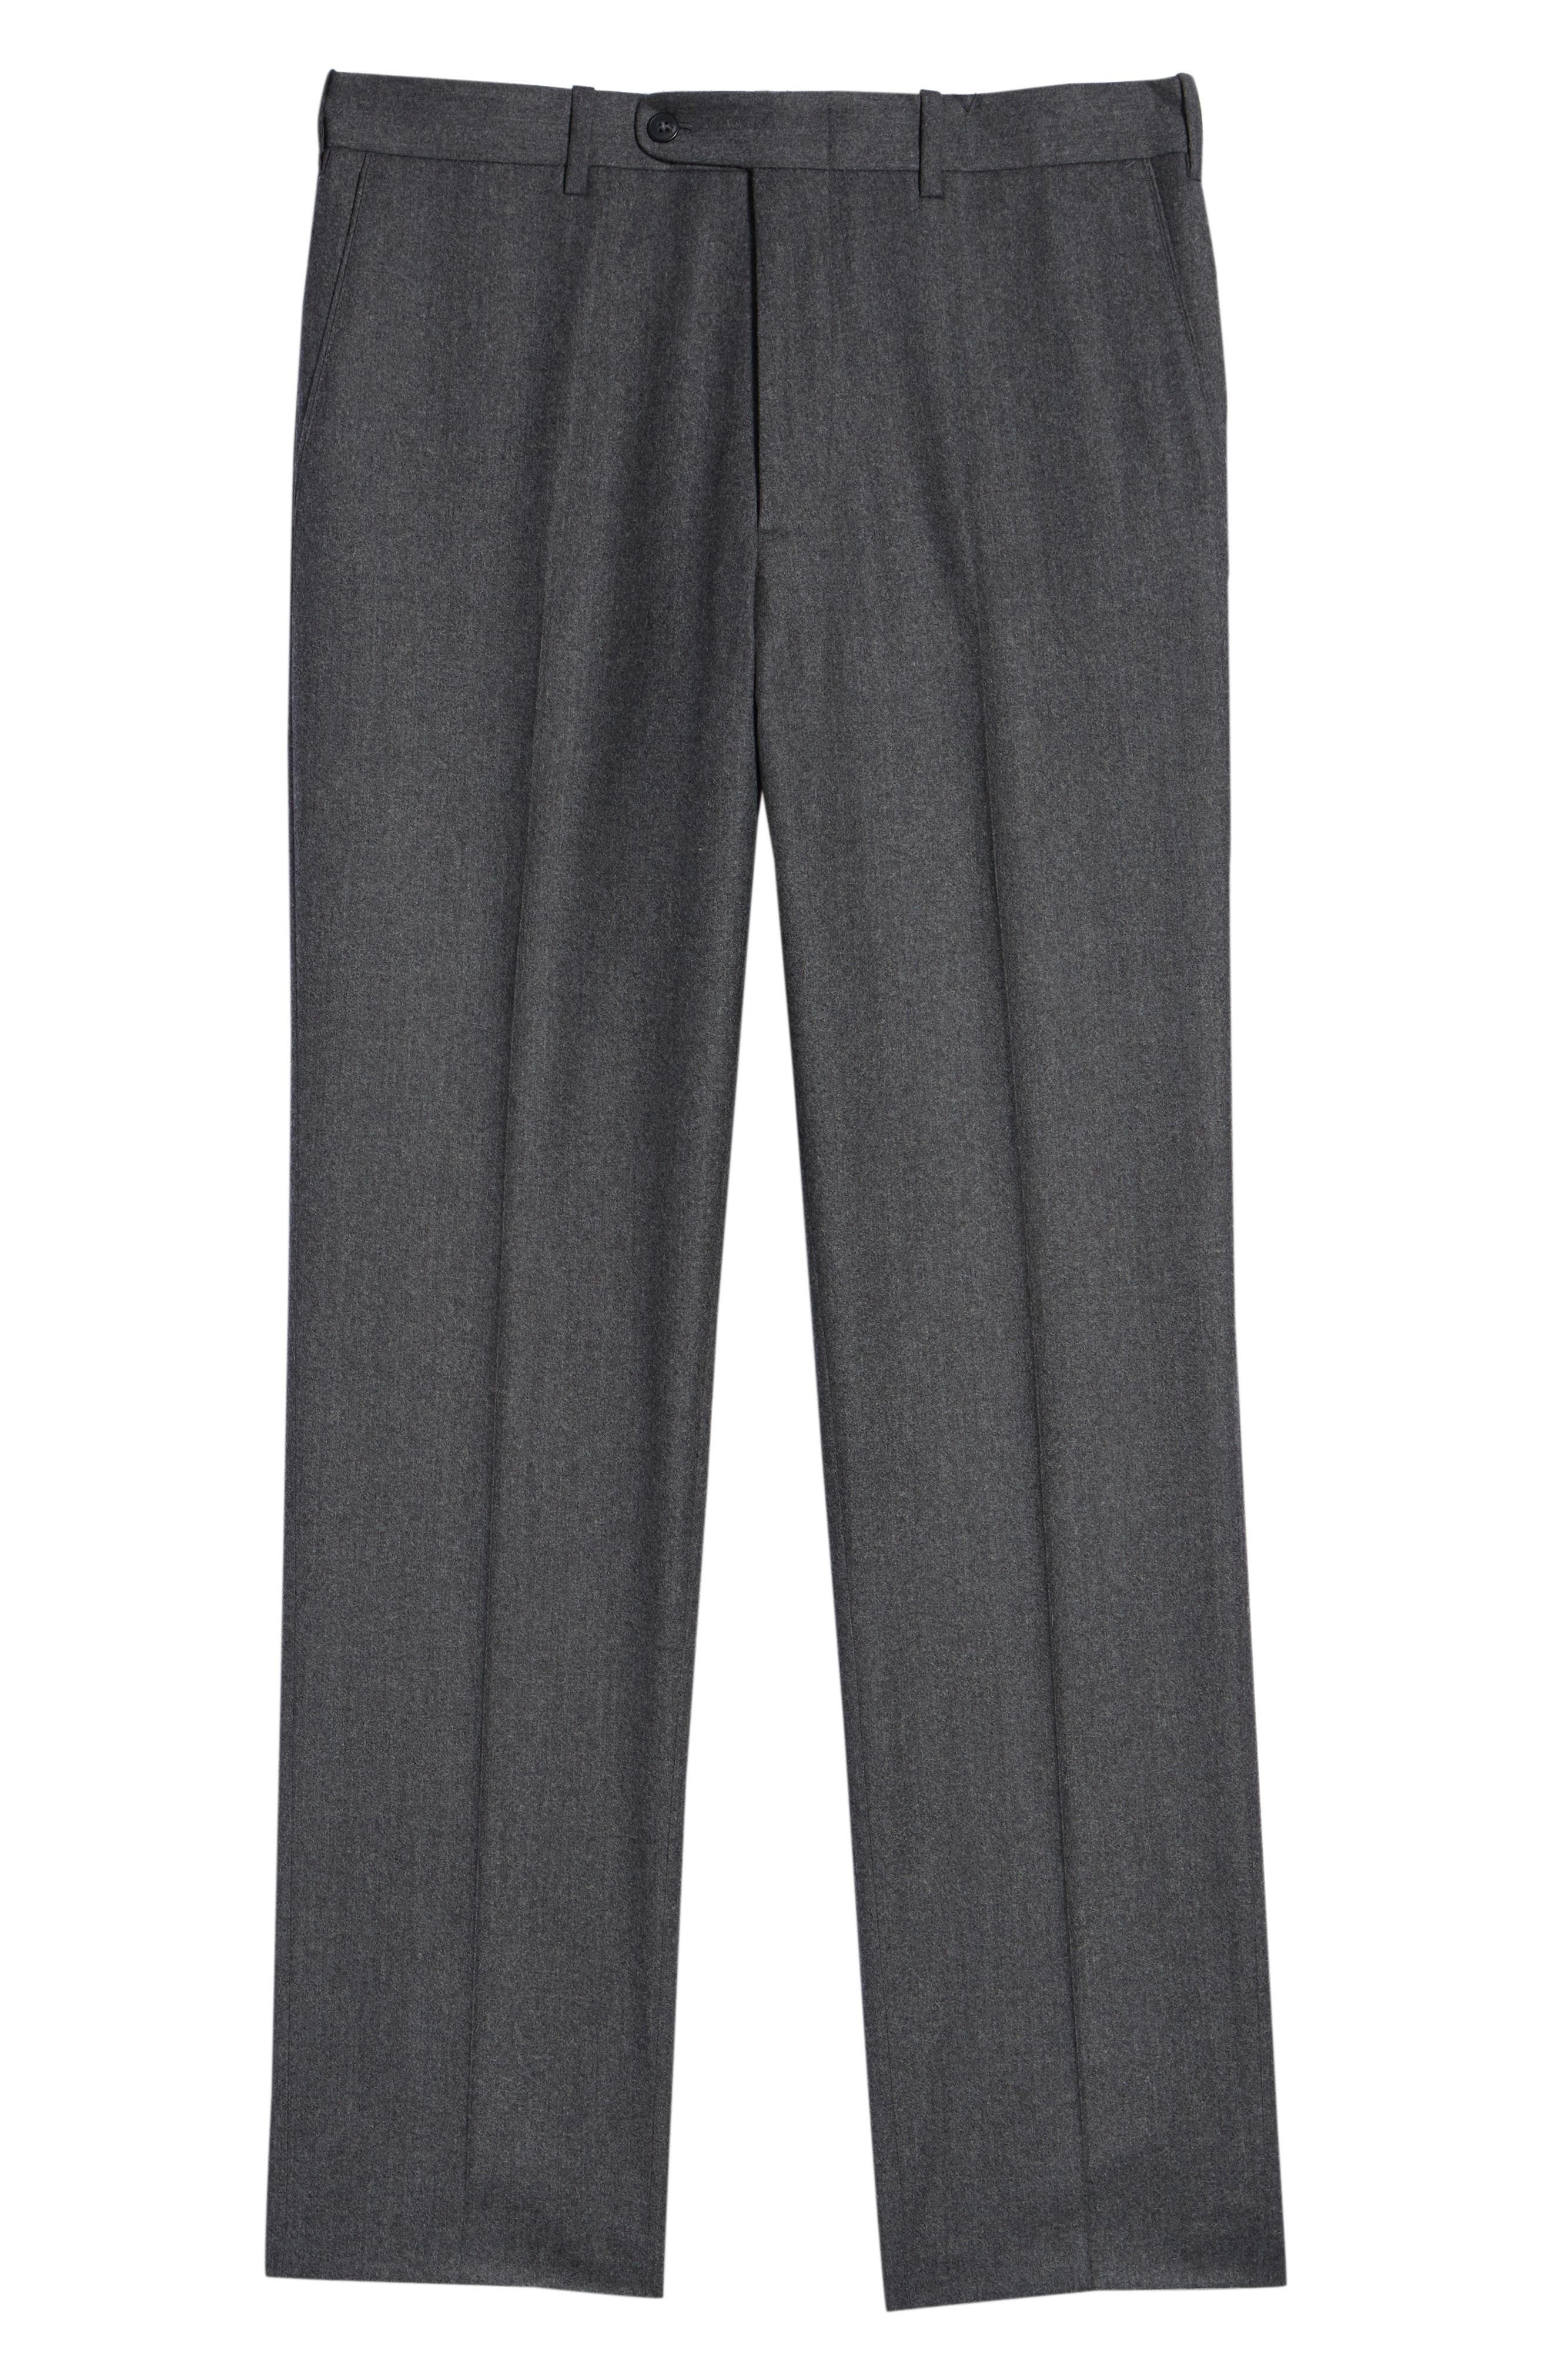 Torino Traditional Fit Flat Front Solid Wool & Cashmere Trousers,                             Alternate thumbnail 6, color,                             MID GREY